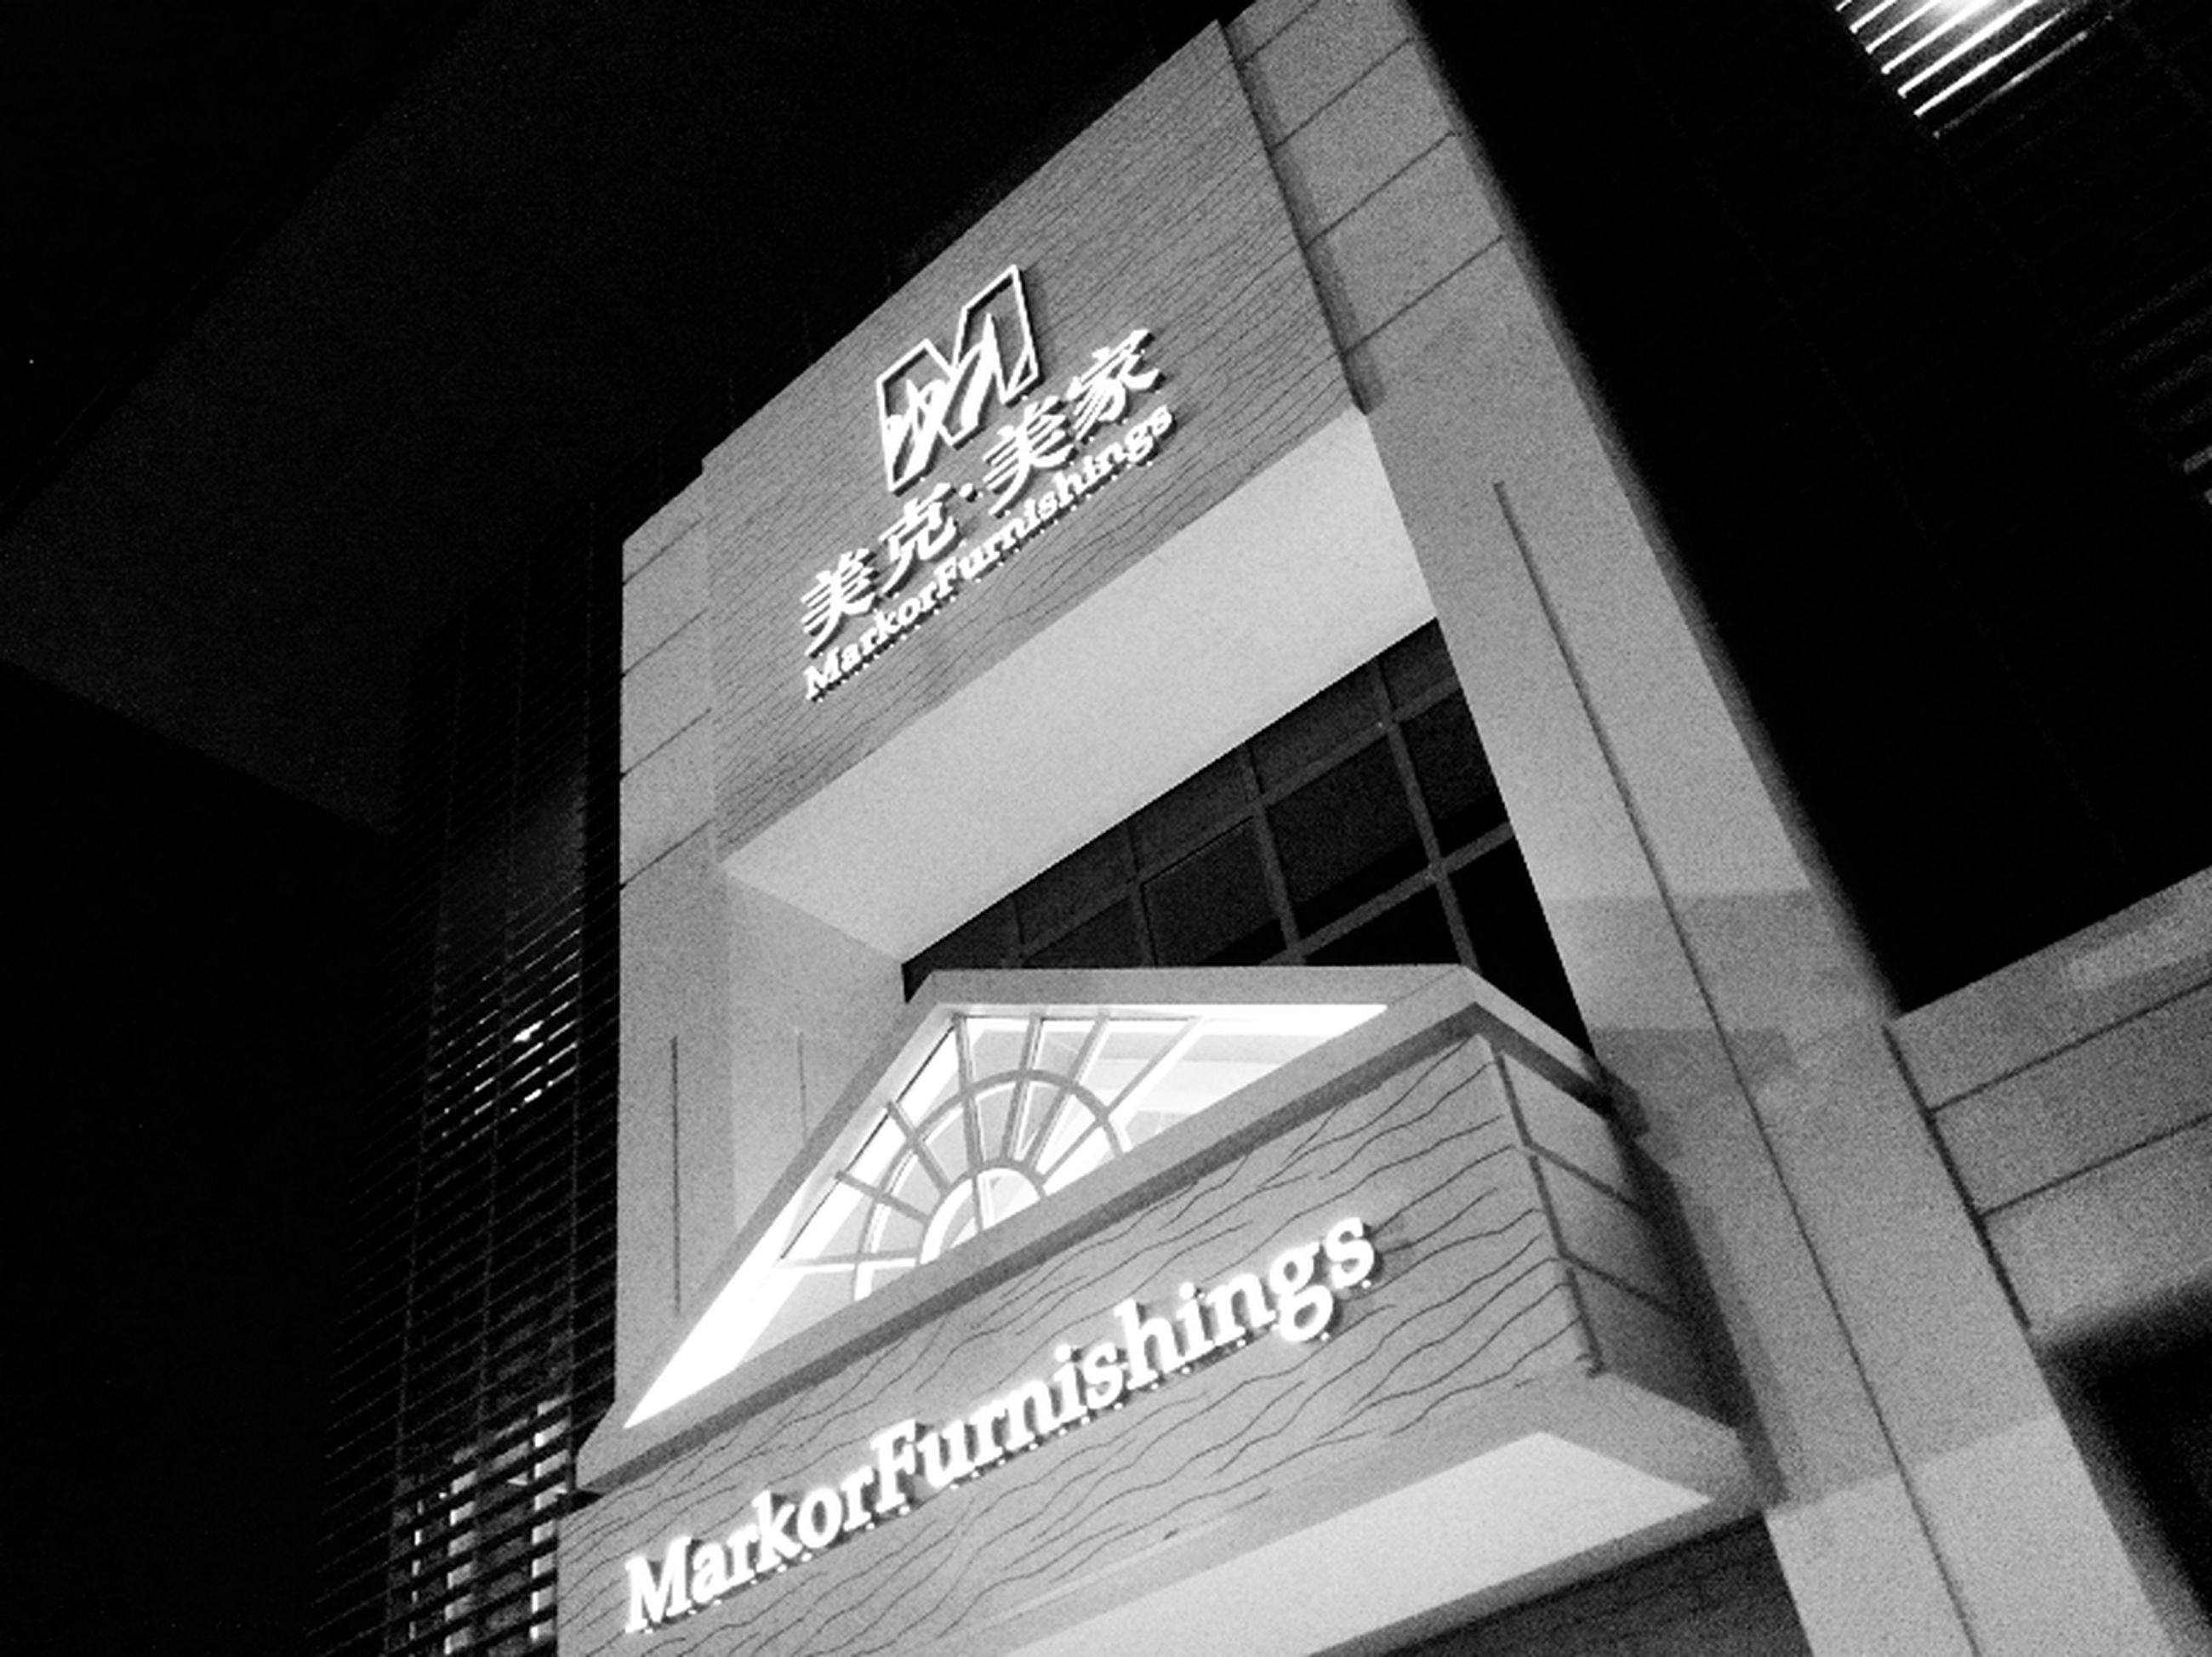 text, western script, communication, architecture, low angle view, built structure, information sign, non-western script, information, capital letter, building exterior, sign, window, indoors, building, no people, guidance, city, arrow symbol, directional sign